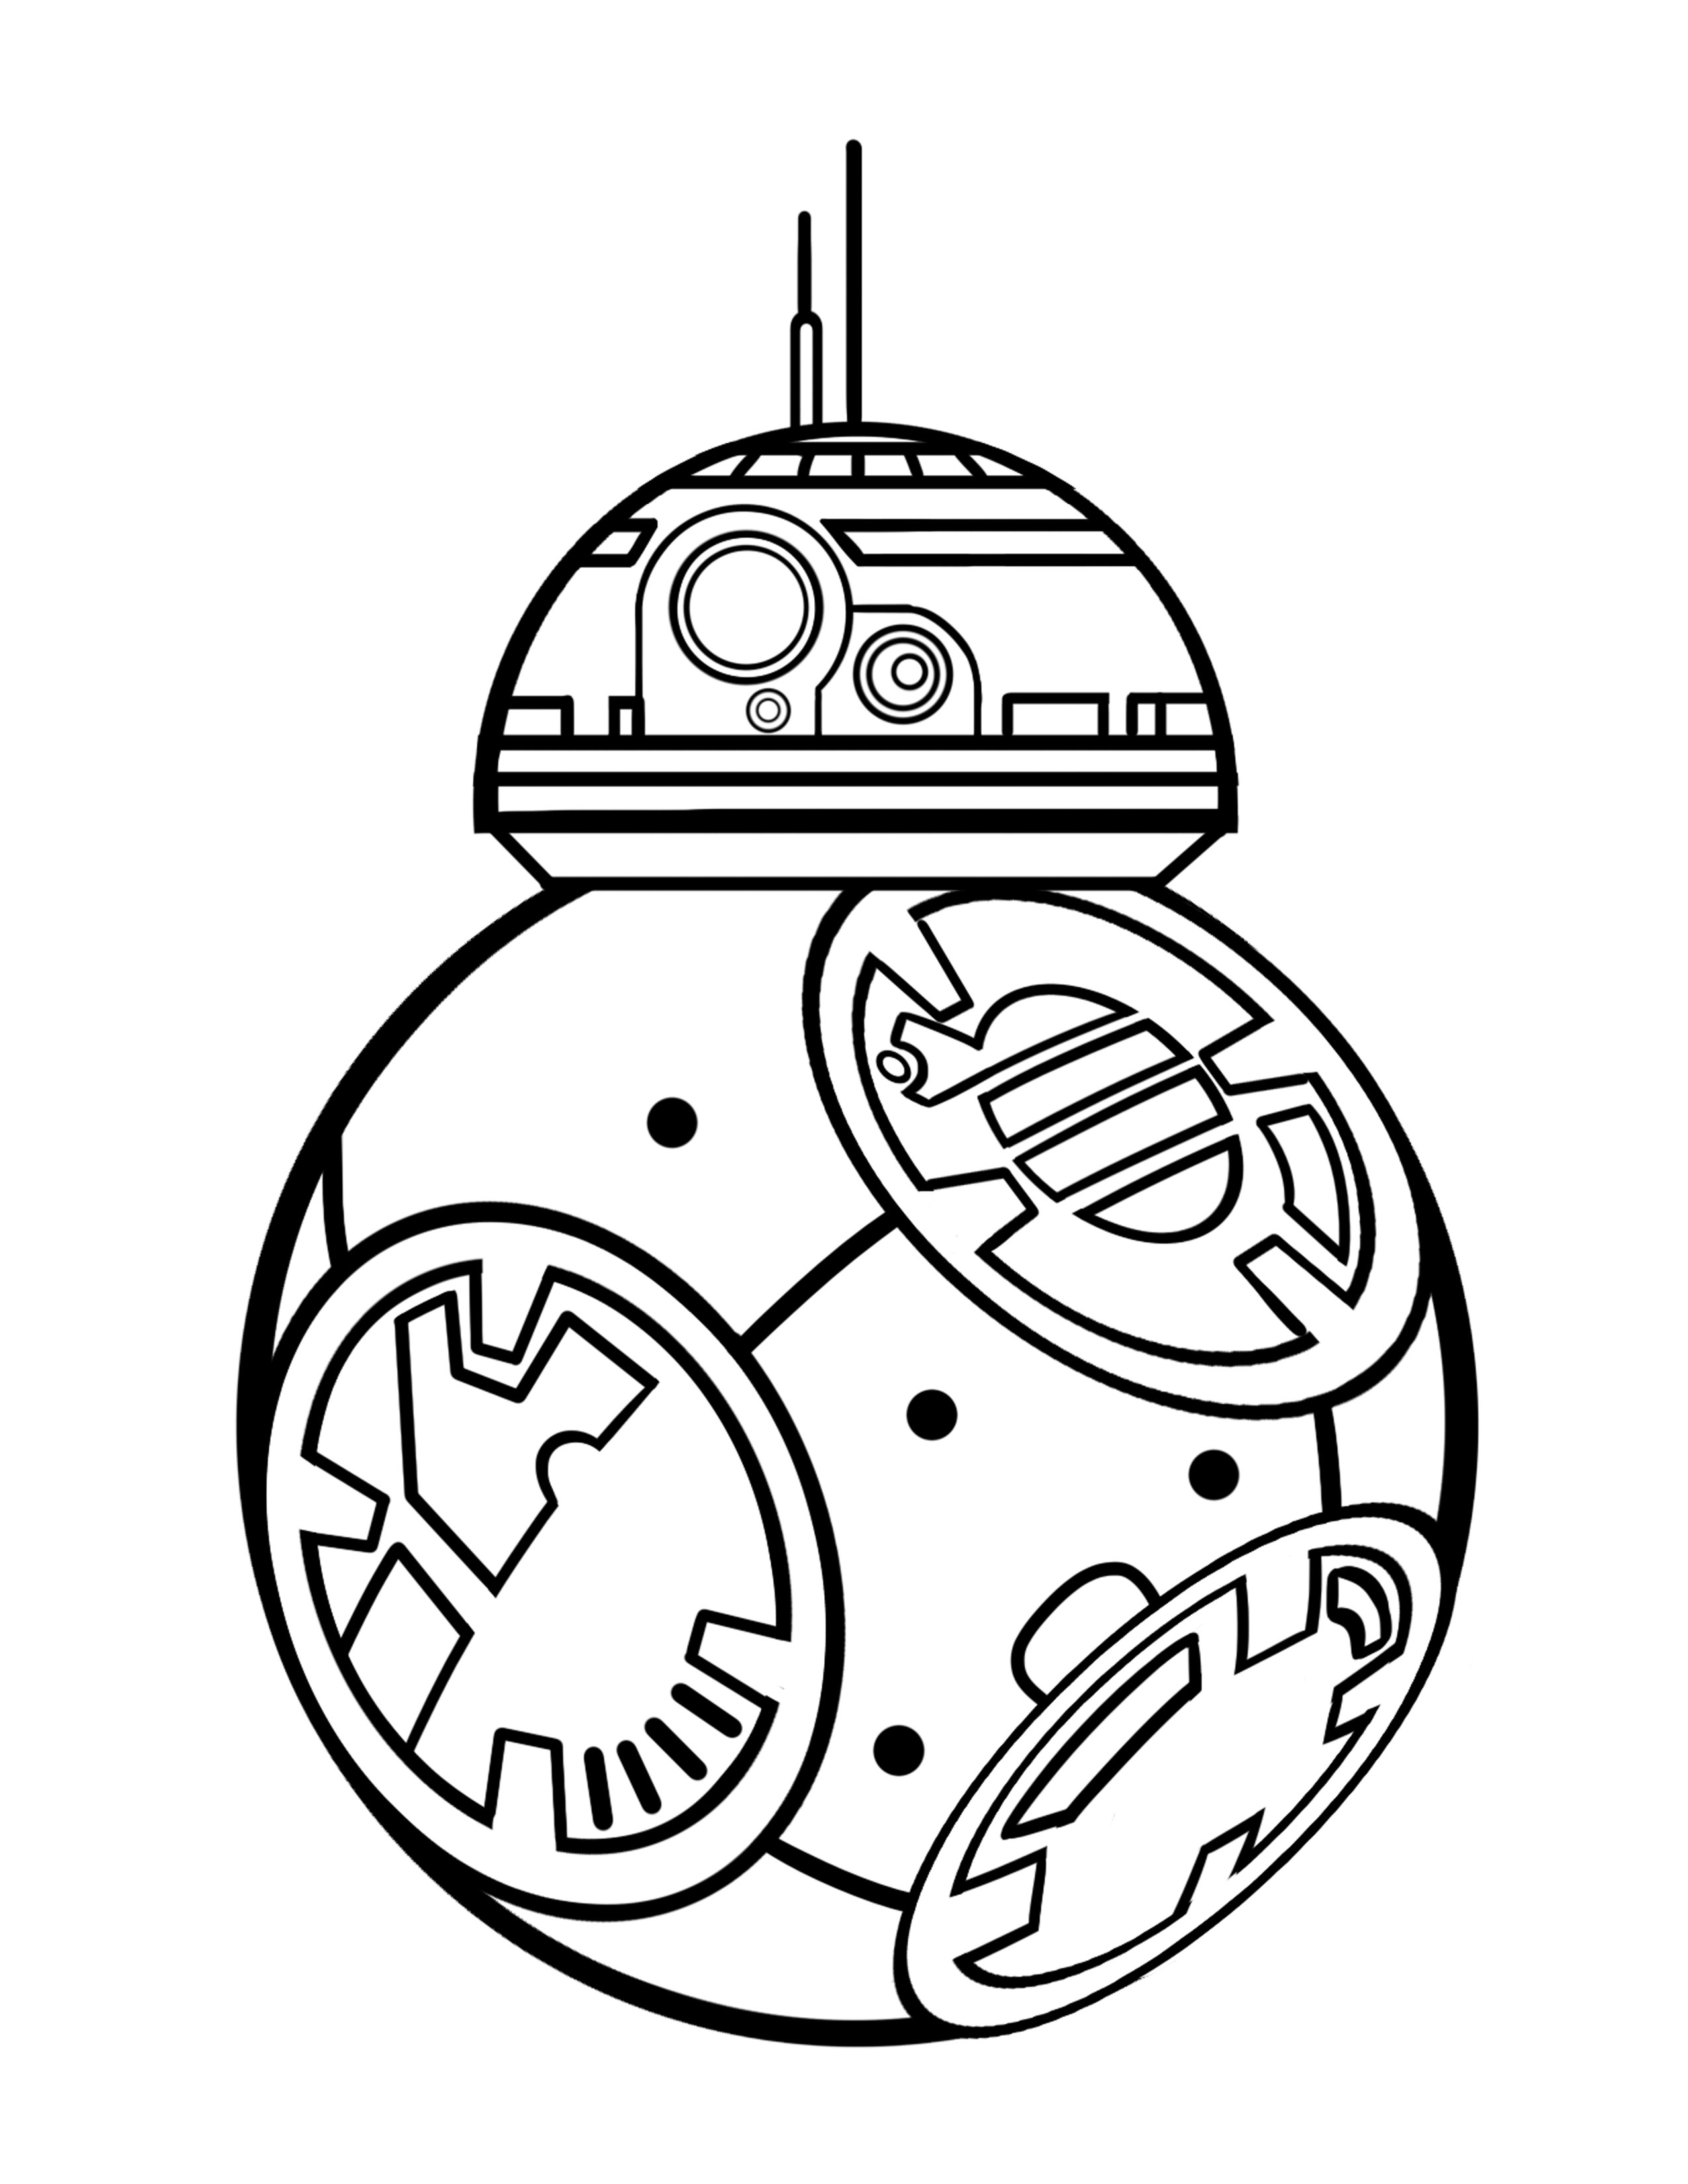 Bb8 Clipart Black And White Bb8 Black And White